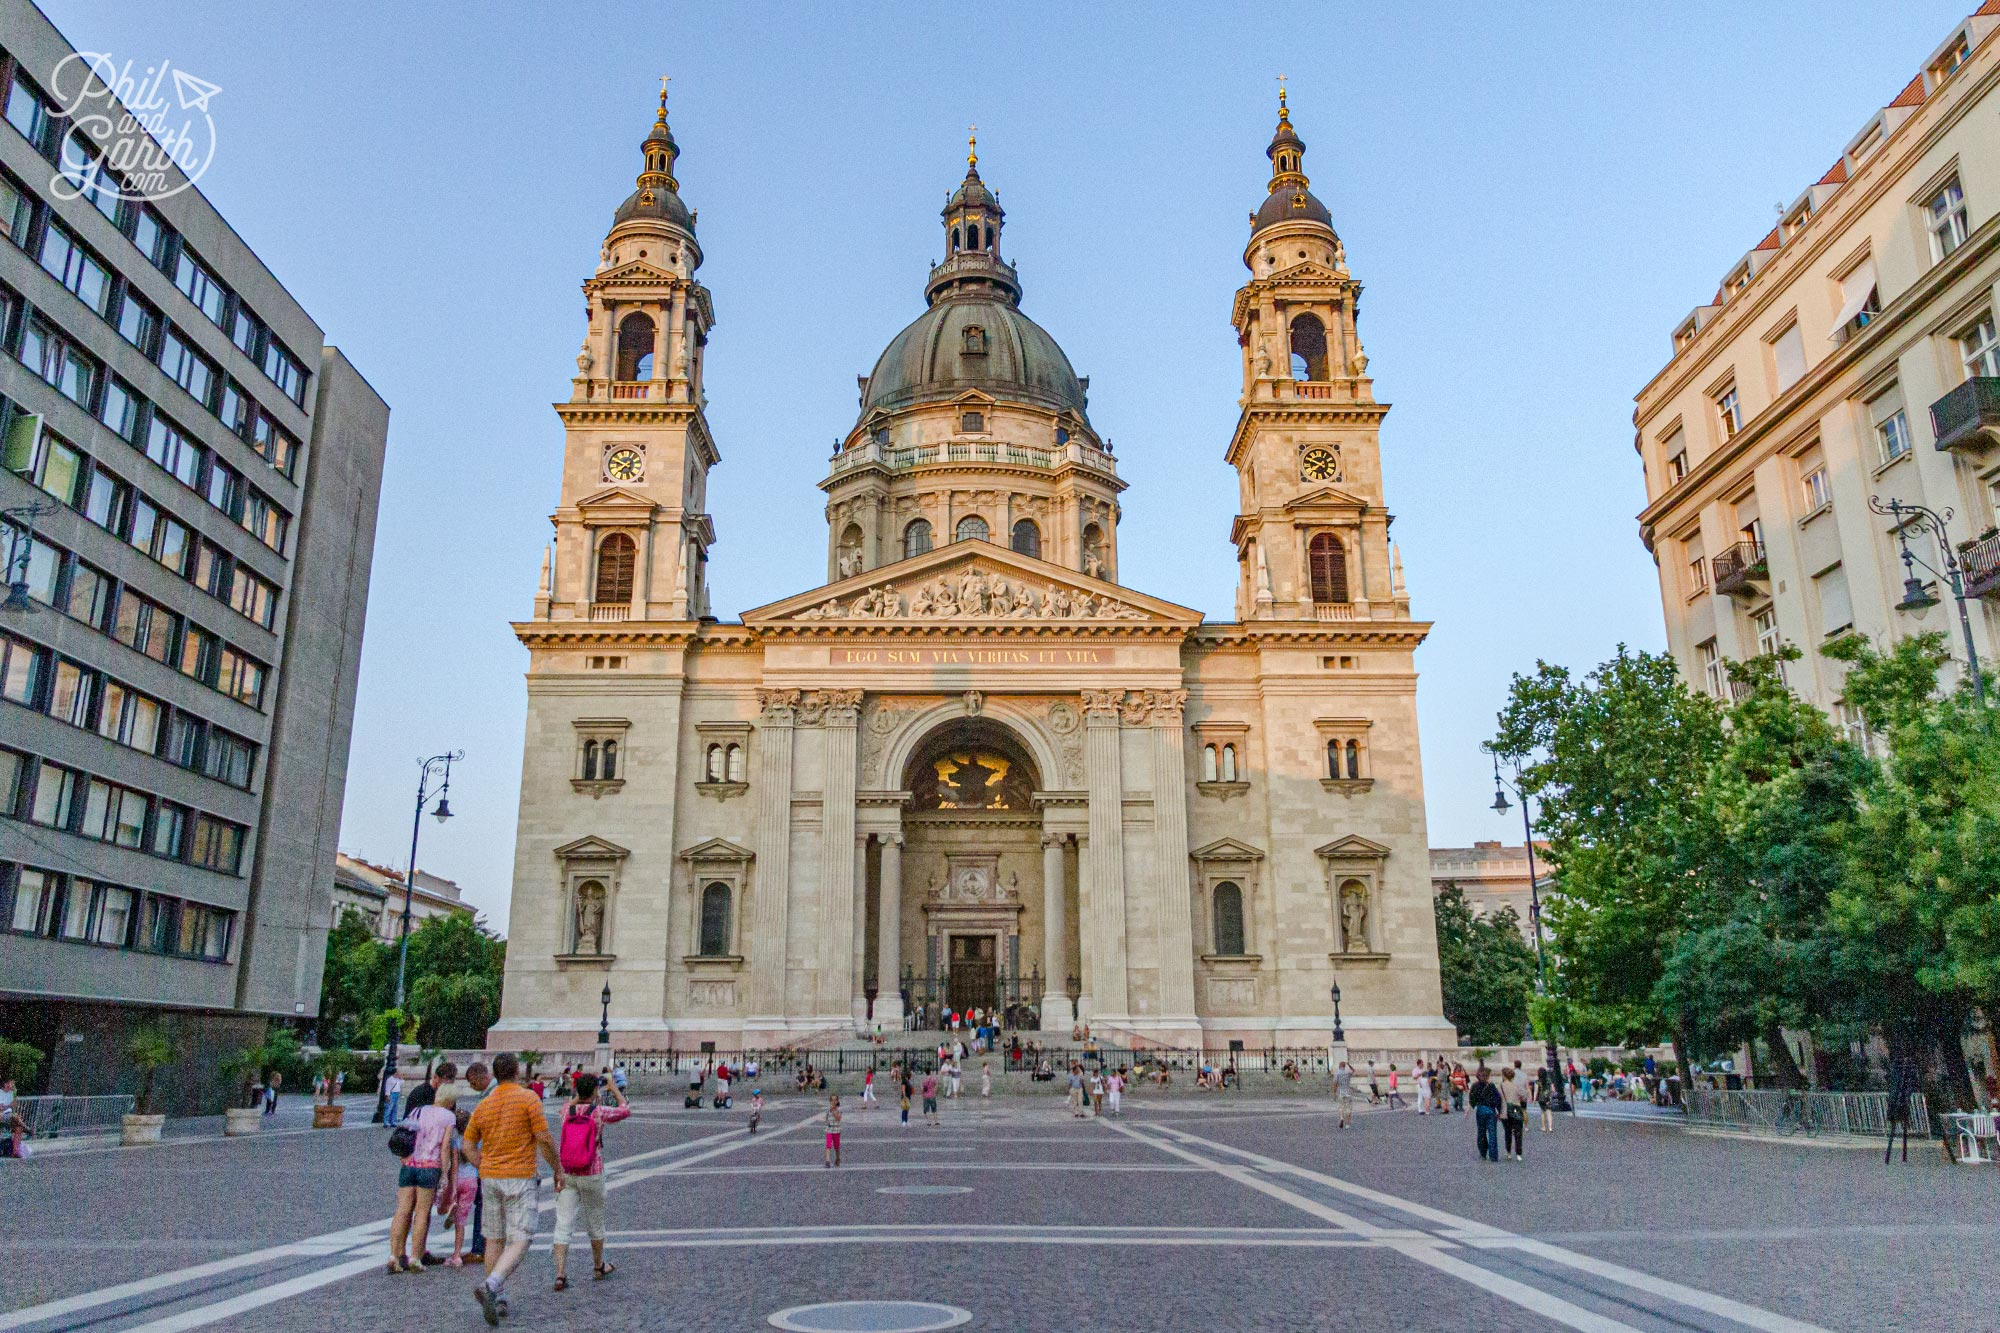 St. Stephen's Basilica was completed in 1905 and took 50 years to build